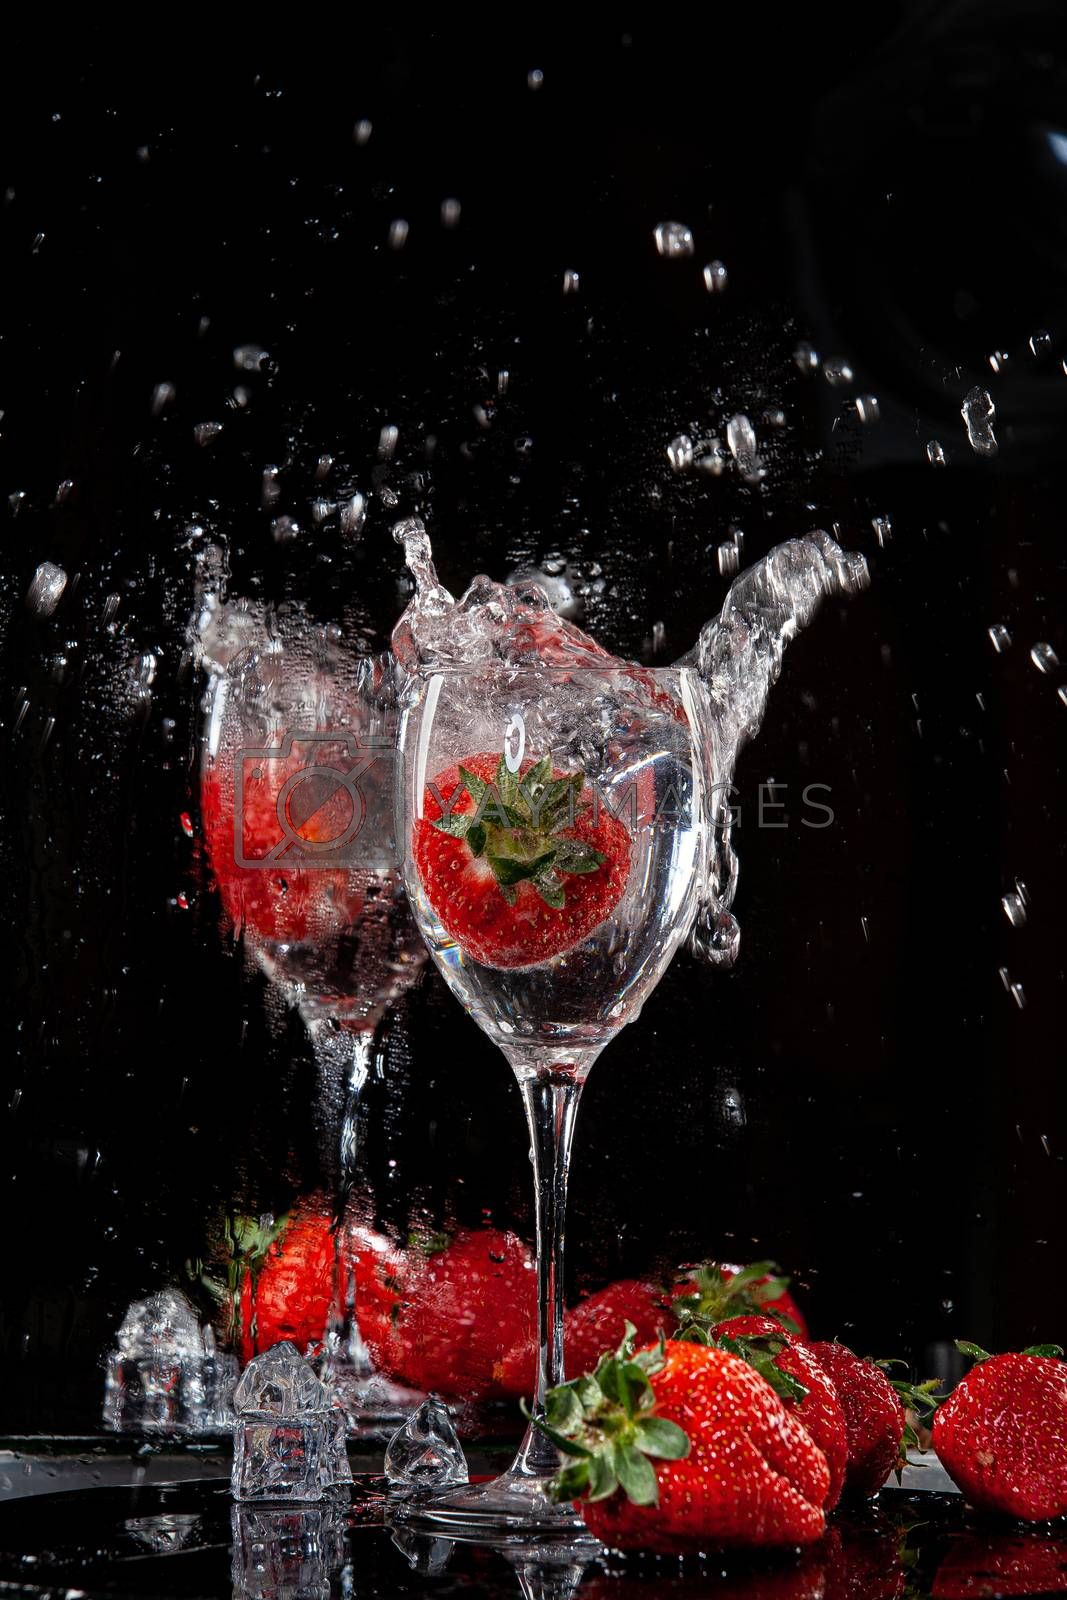 Strawberry falling into the glass with water